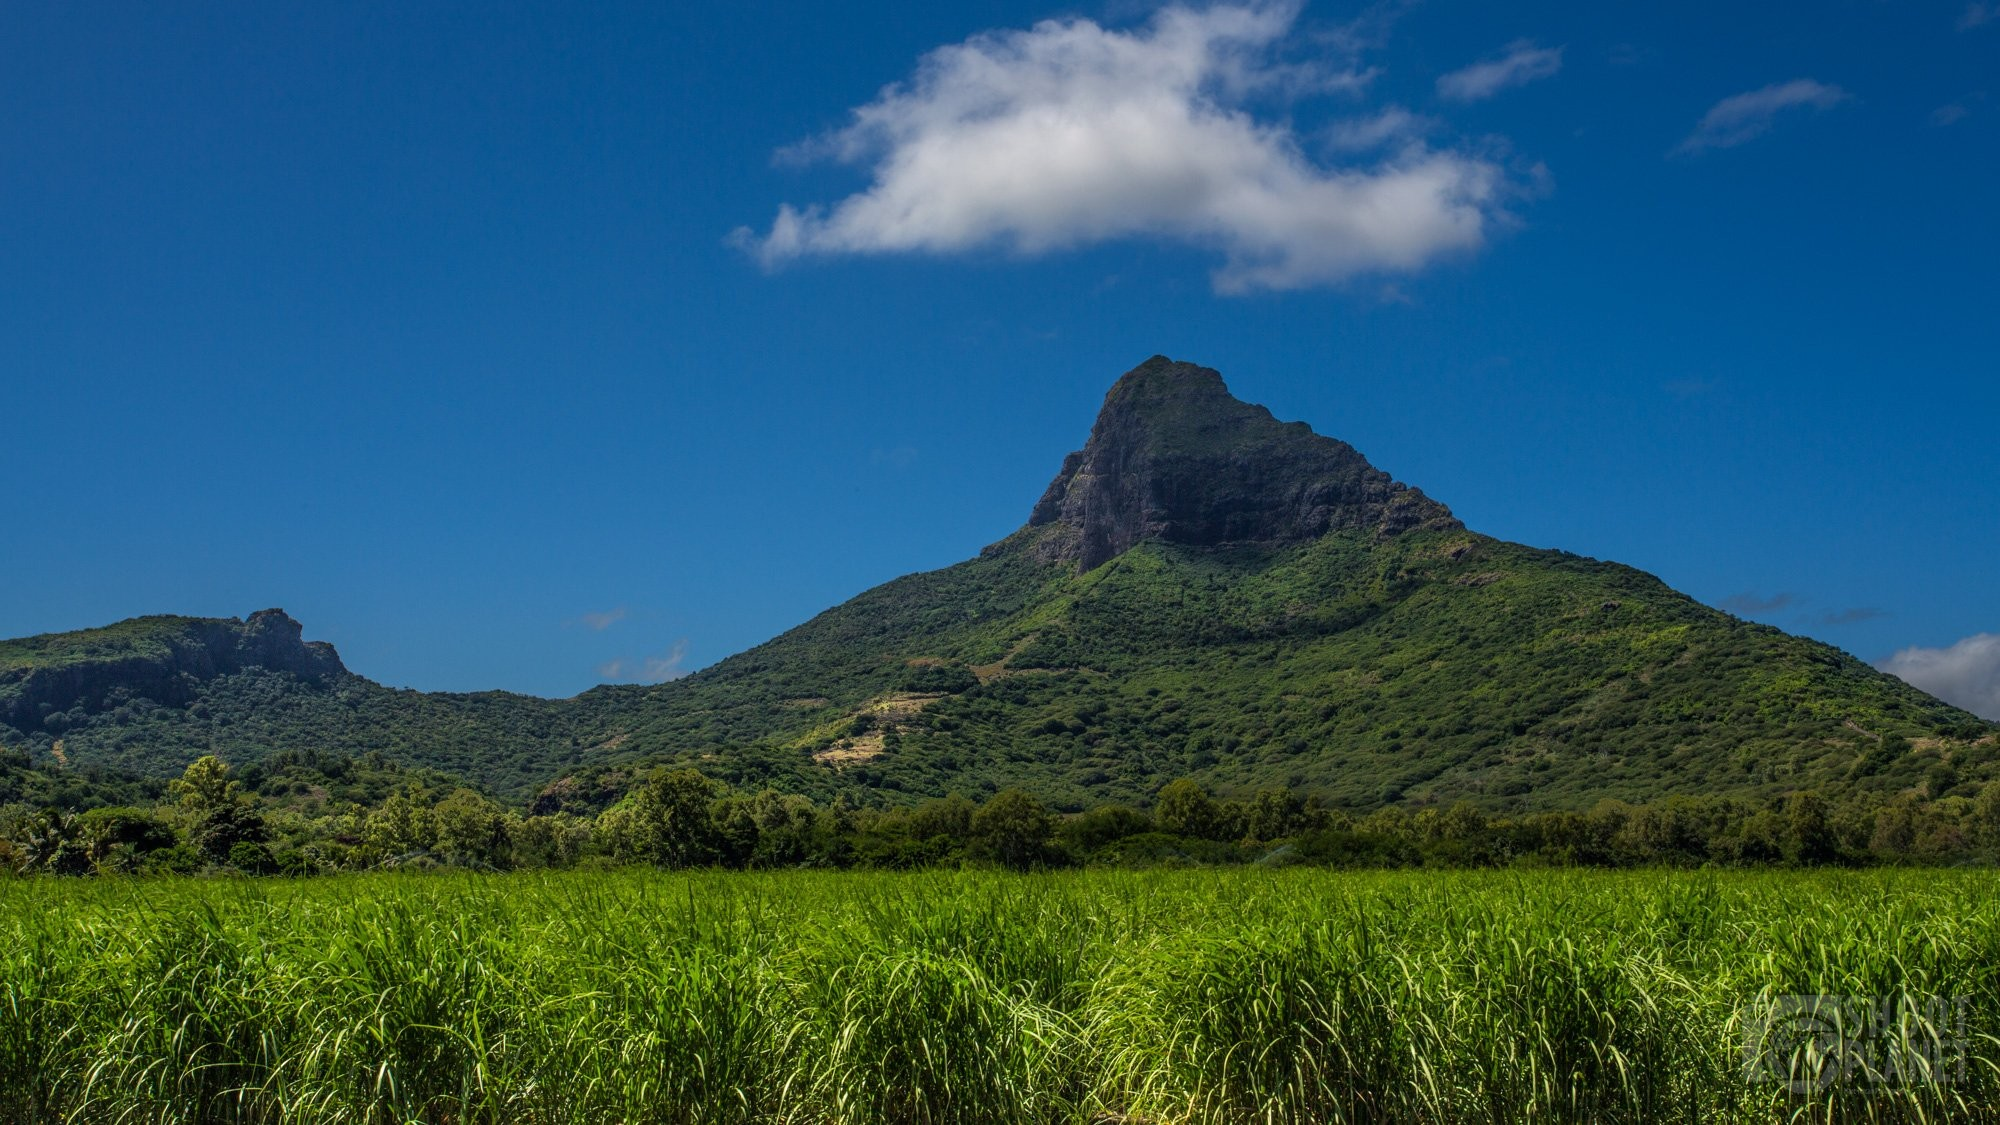 Lion Mountain and sugar cane field, Mauritius